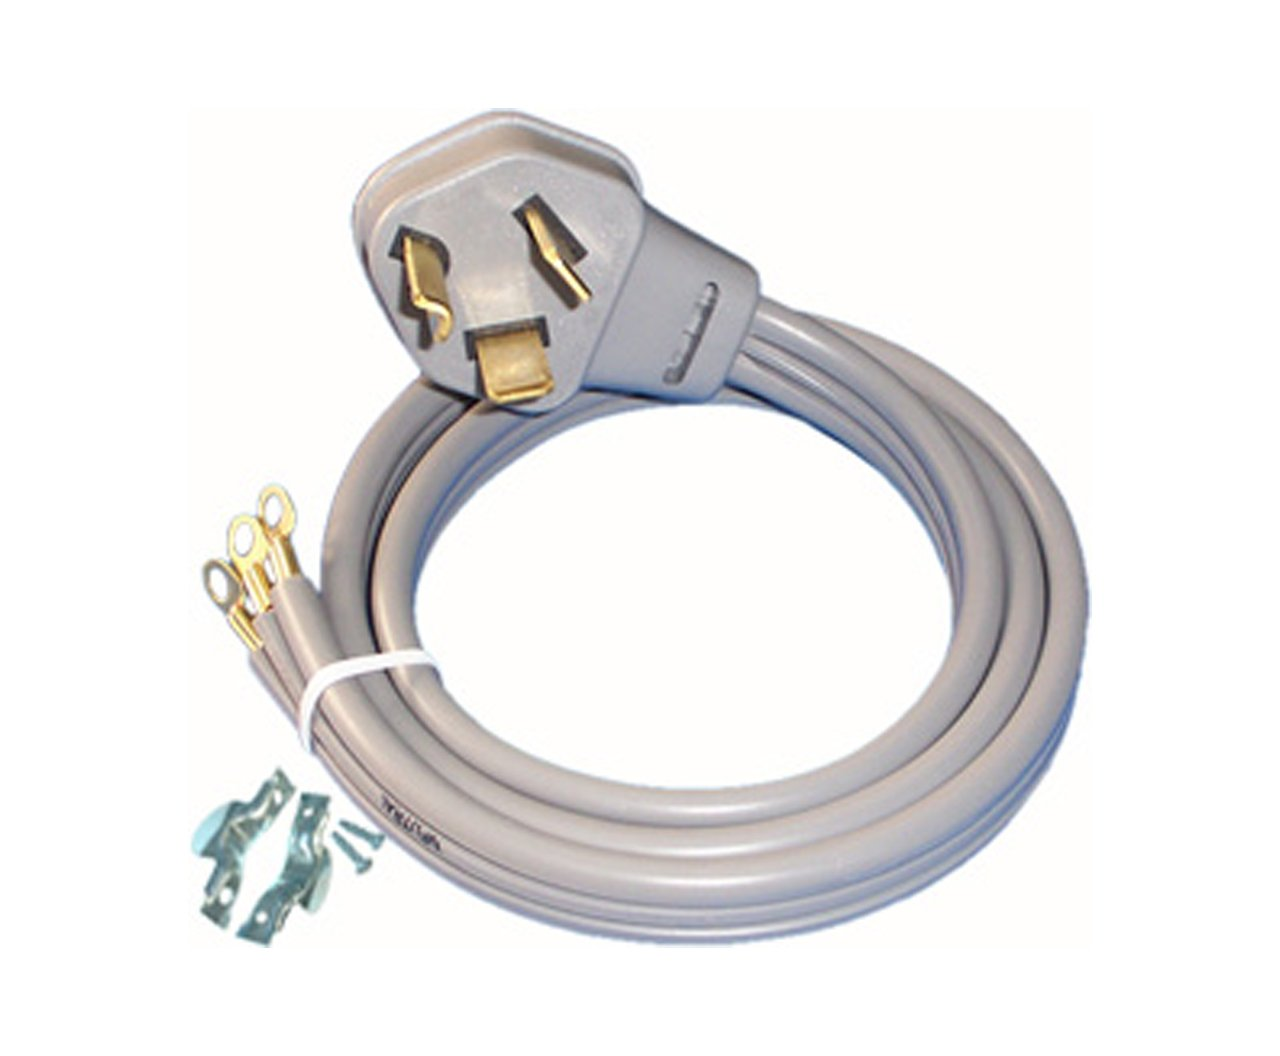 Conntek RL-40105 6-Feet 3-Wire 30-Amp 250-volt Dryer Cord